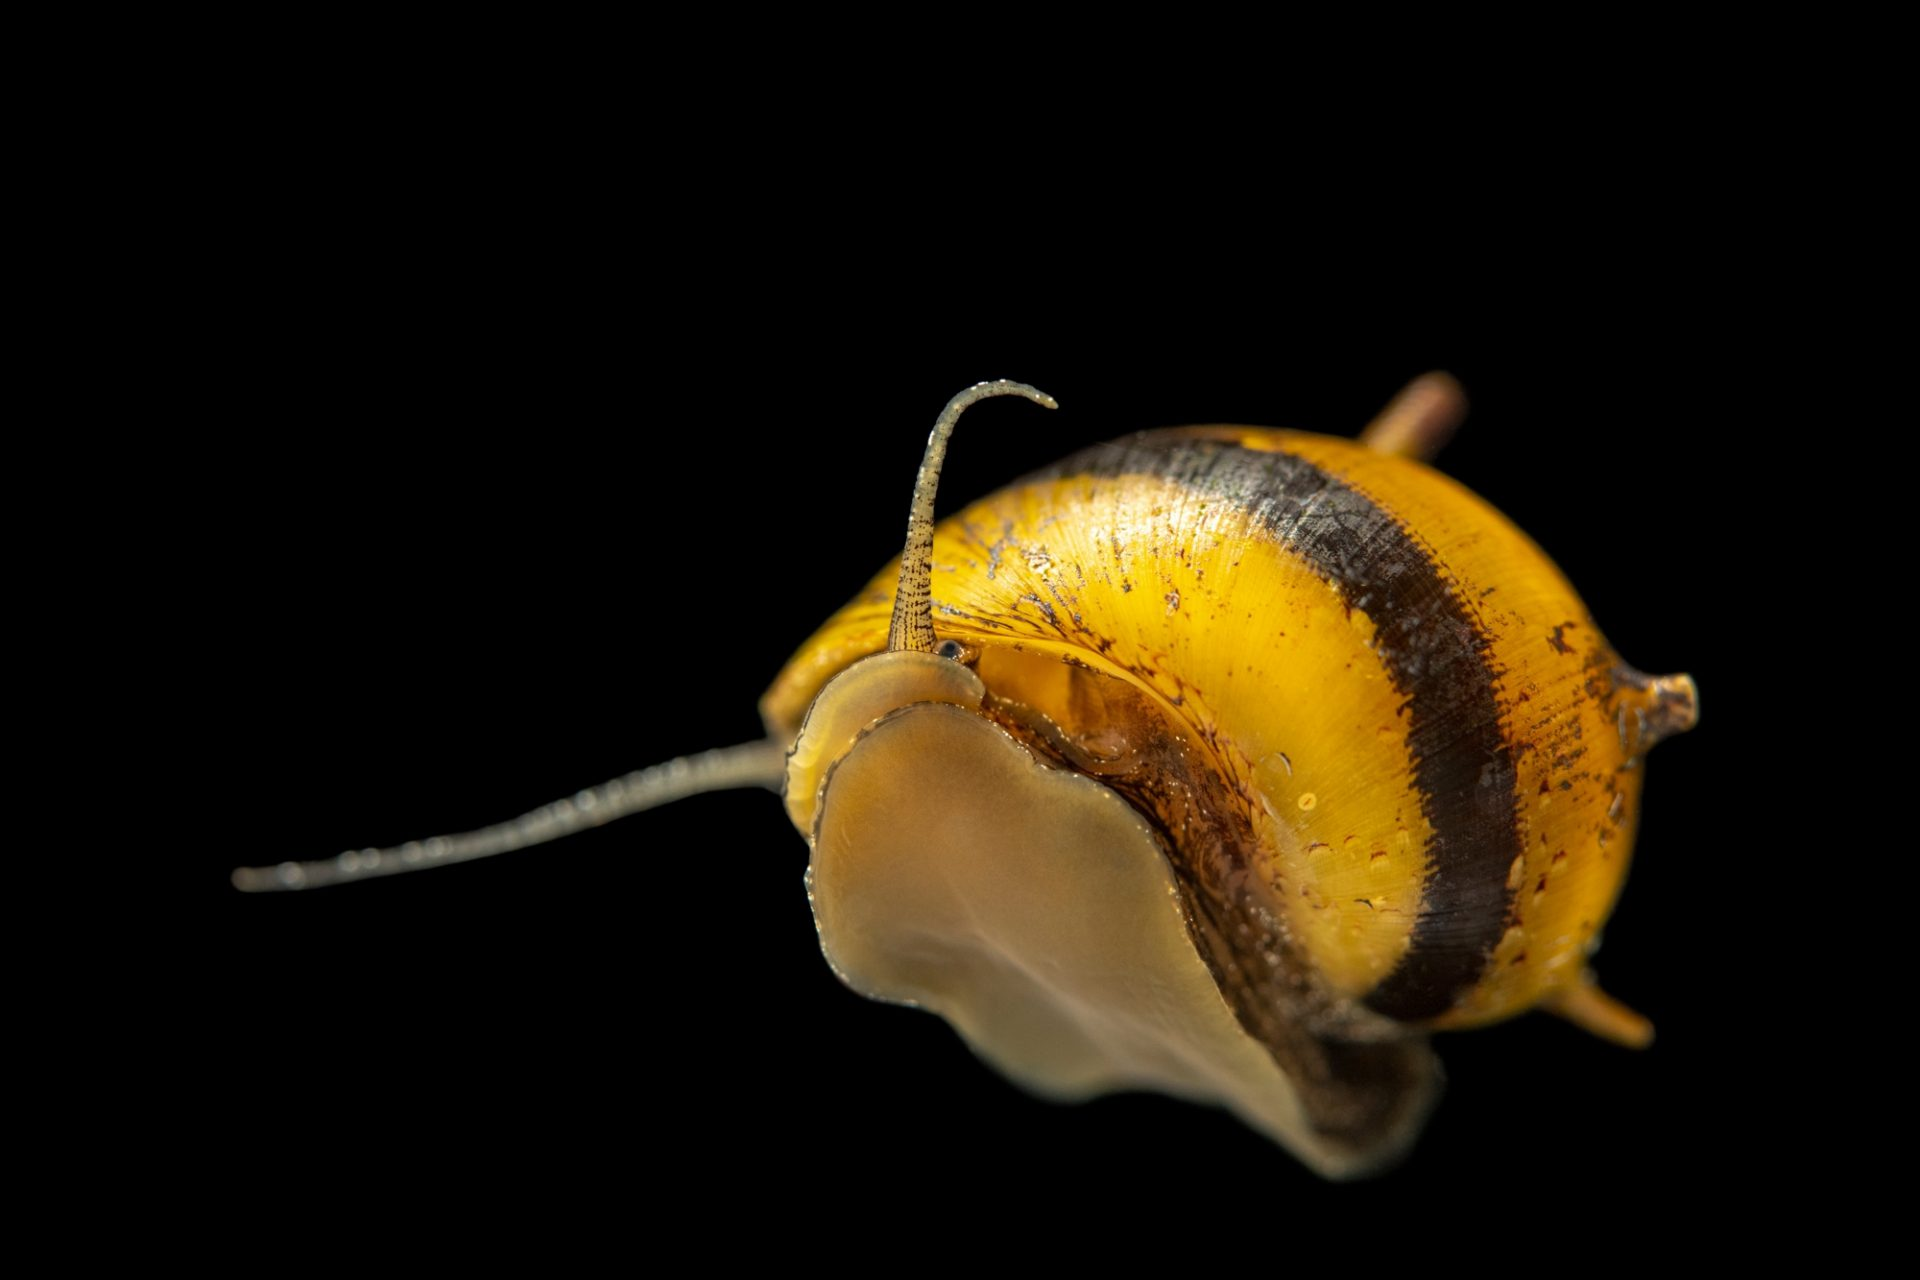 Photo: Horned nerite snail (Clithon corona) from a private collection.